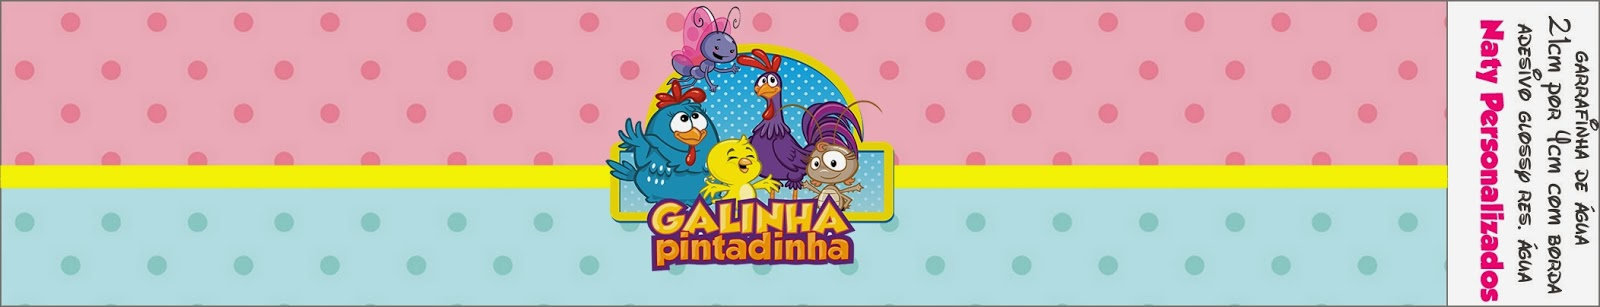 Amiga do facebook de shortinho facebook friend of shorts - 1 part 3